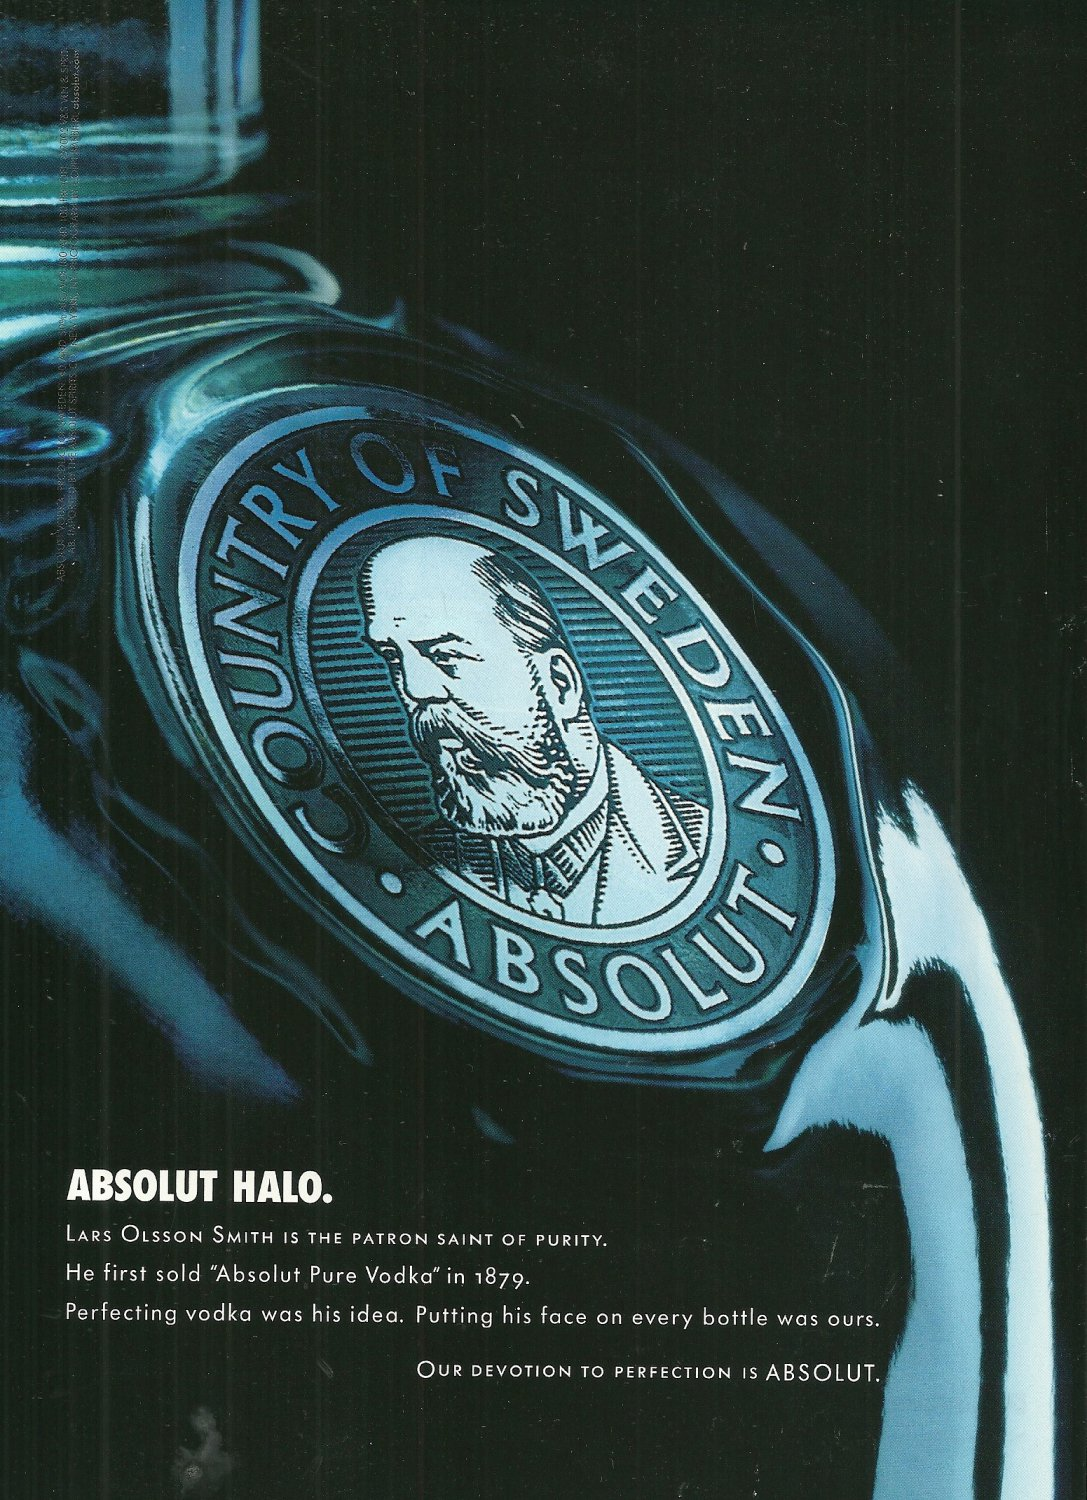 ABSOLUT HALO Heritage Series Vodka Magazine Ad